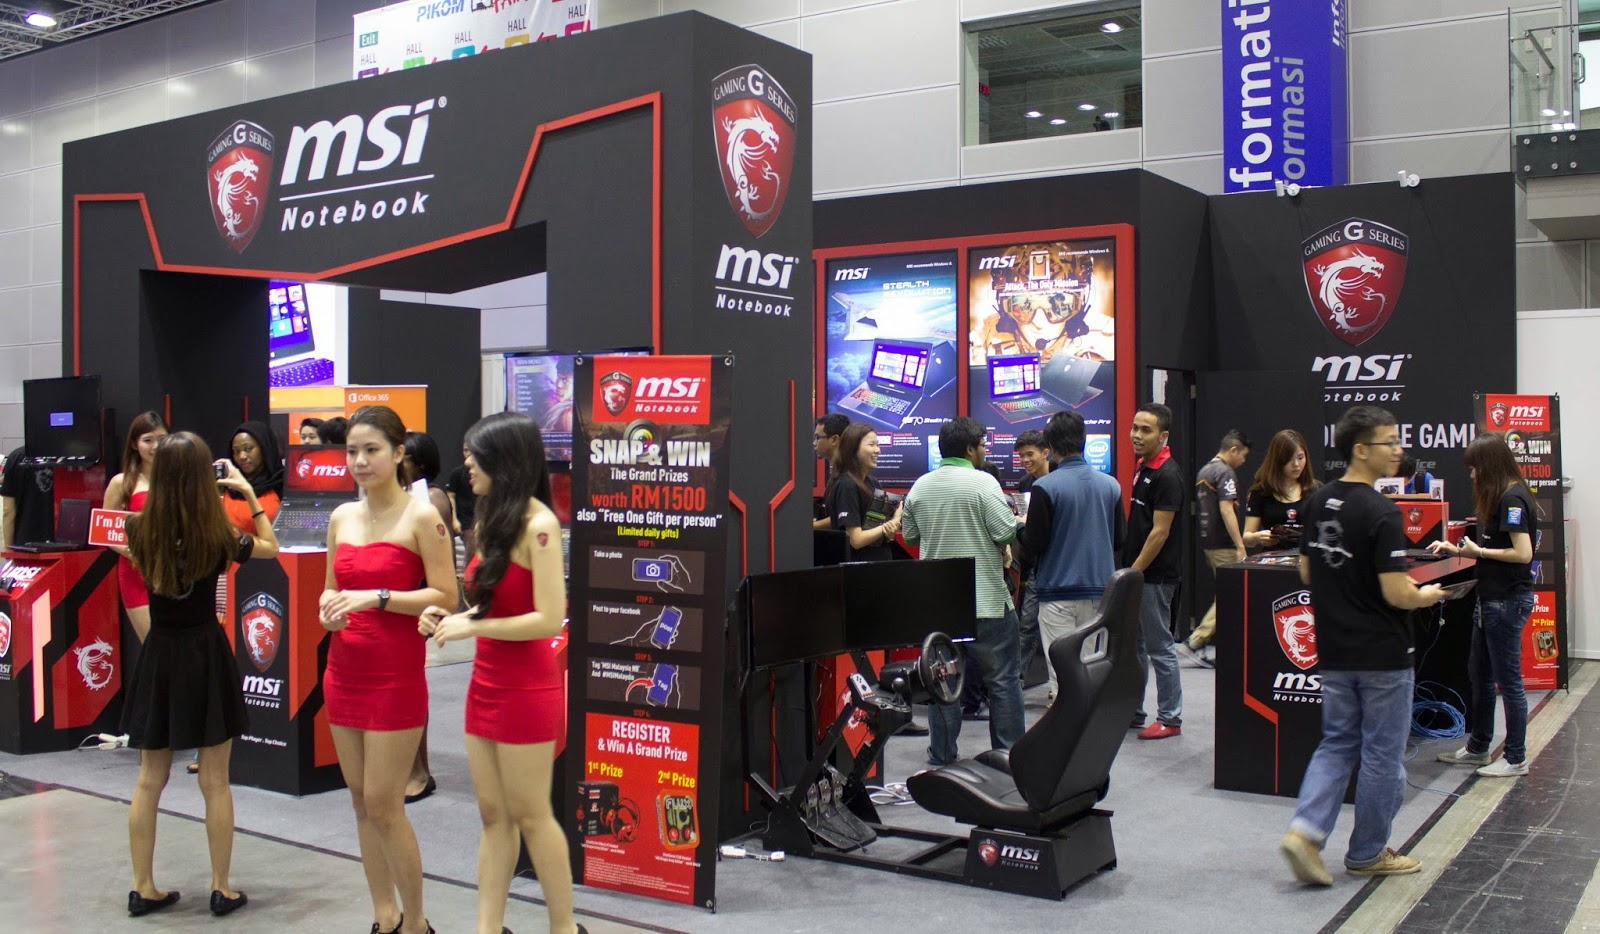 Coverage of PIKOM PC Fair 2014 @ Kuala Lumpur Convention Center 291